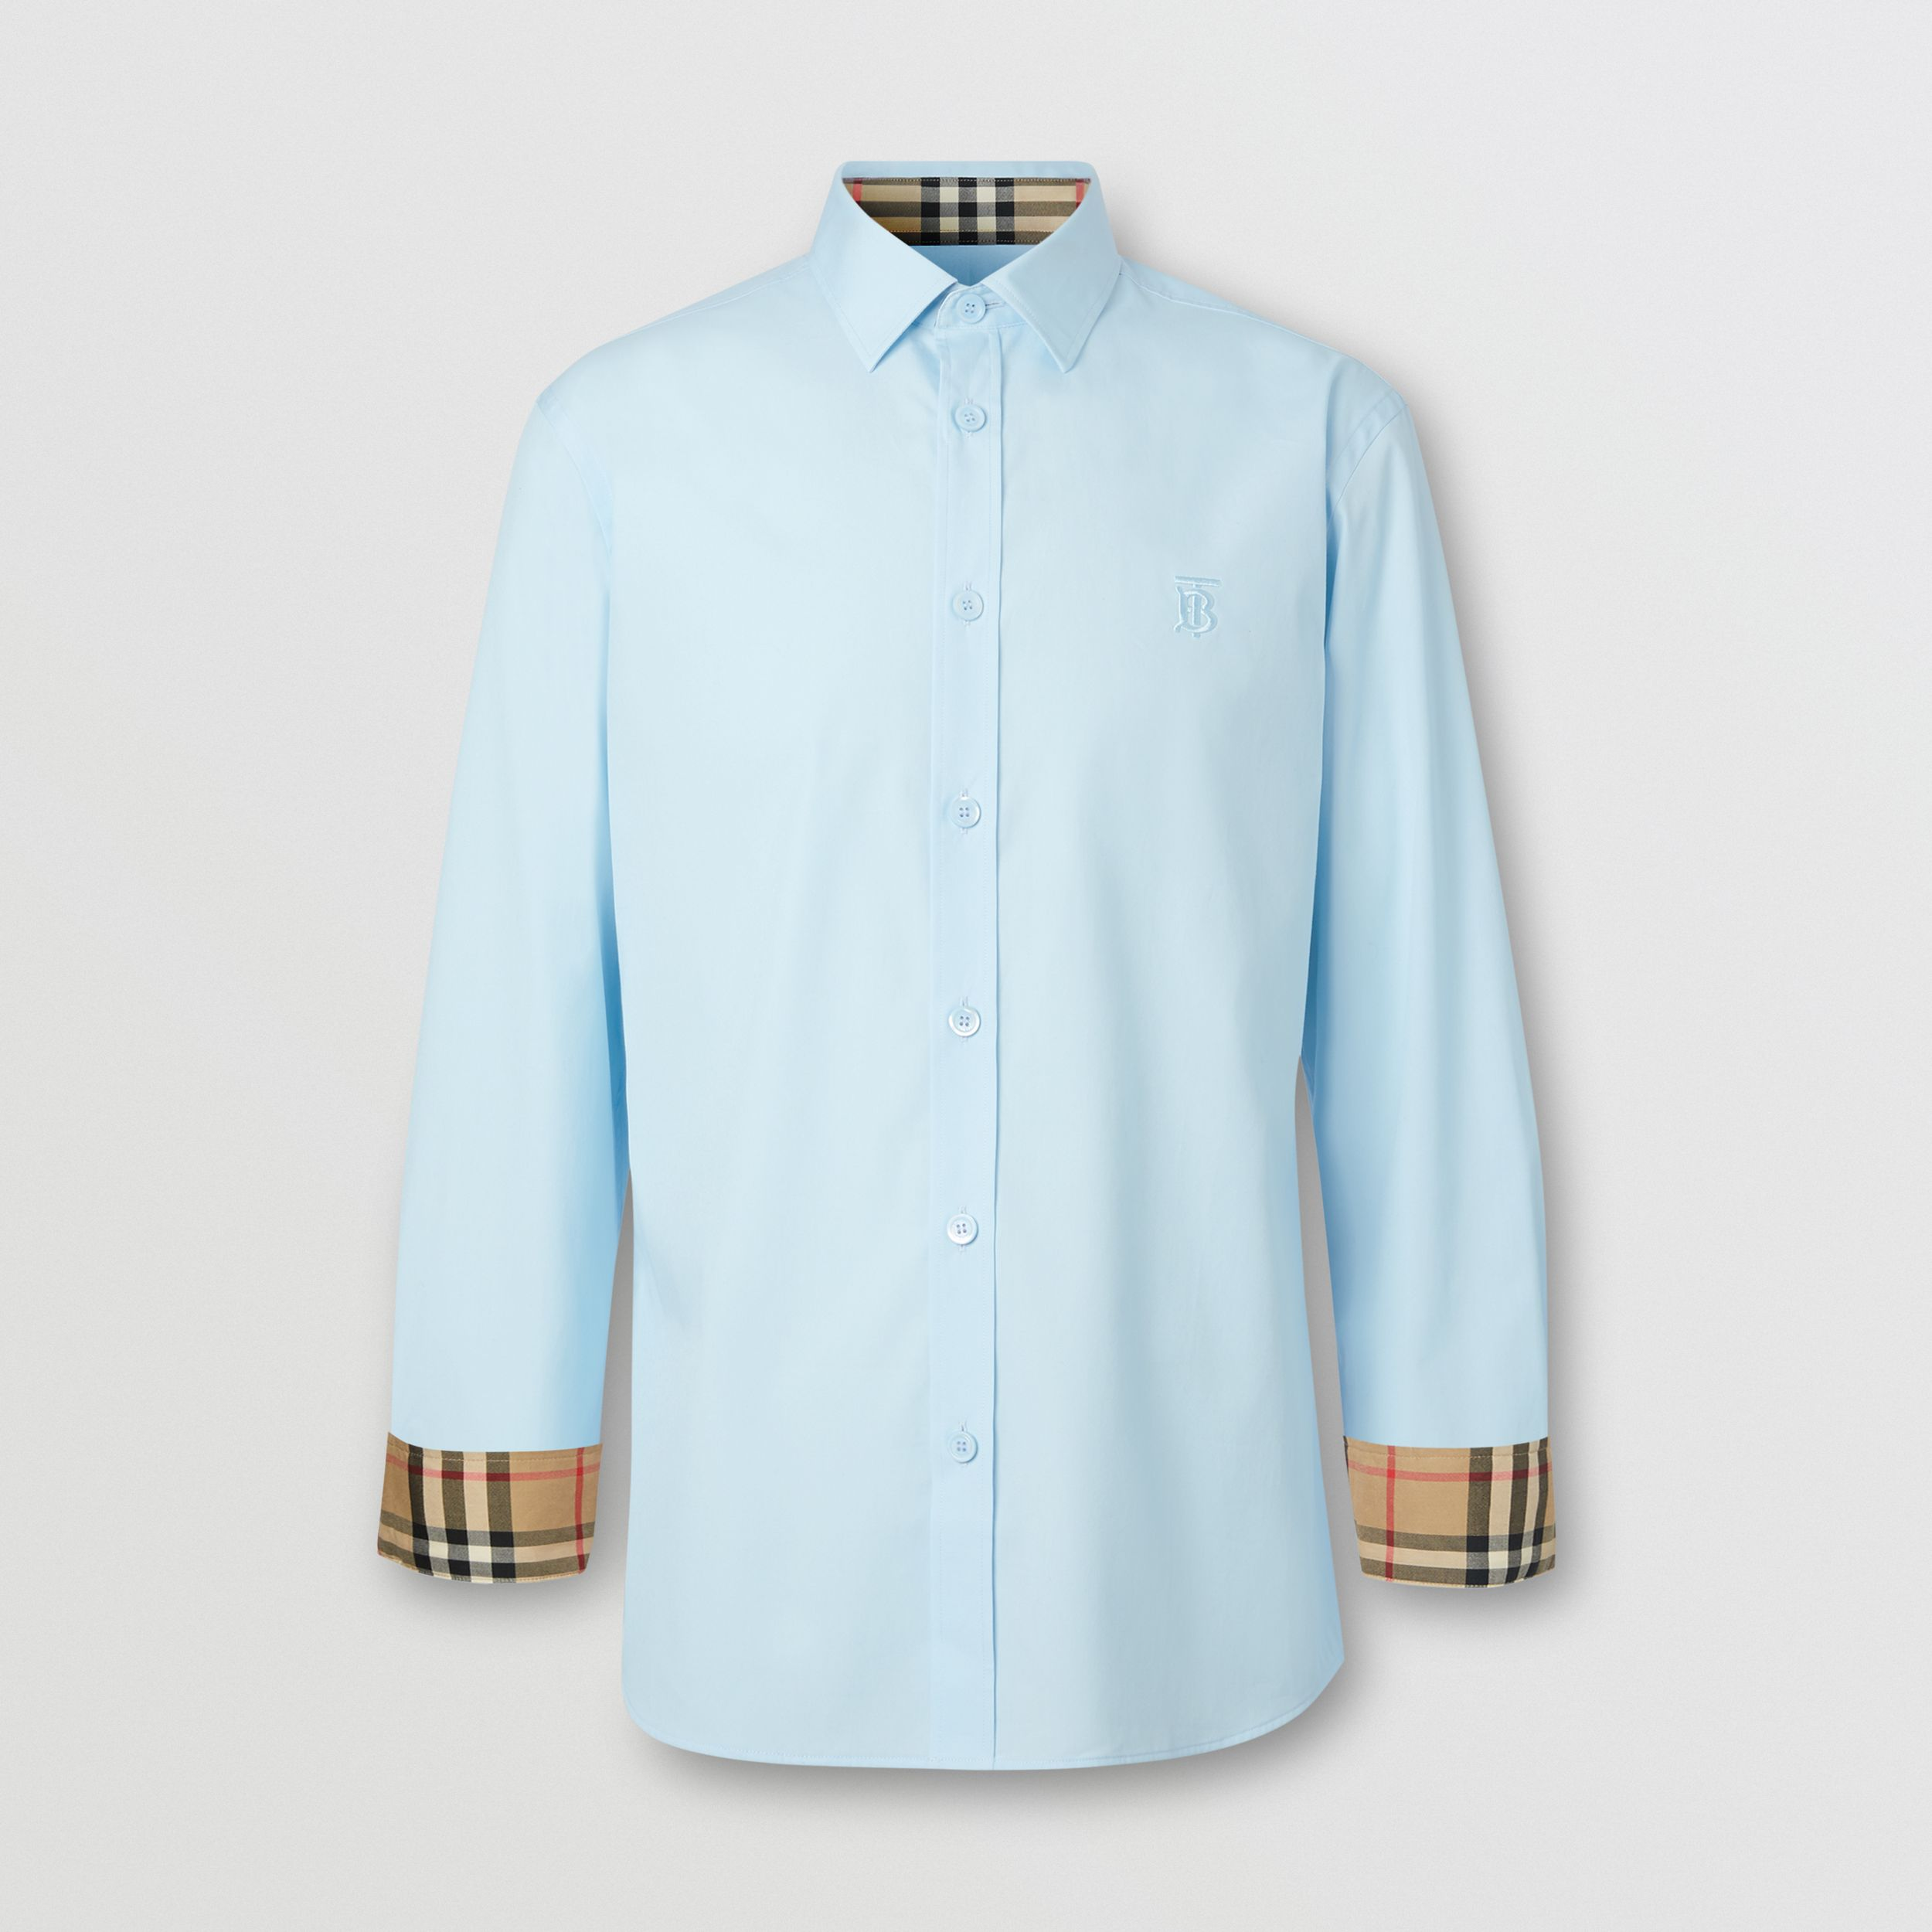 Slim Fit Monogram Motif Stretch Cotton Poplin Shirt in Pale Blue - Men | Burberry Hong Kong S.A.R. - 4